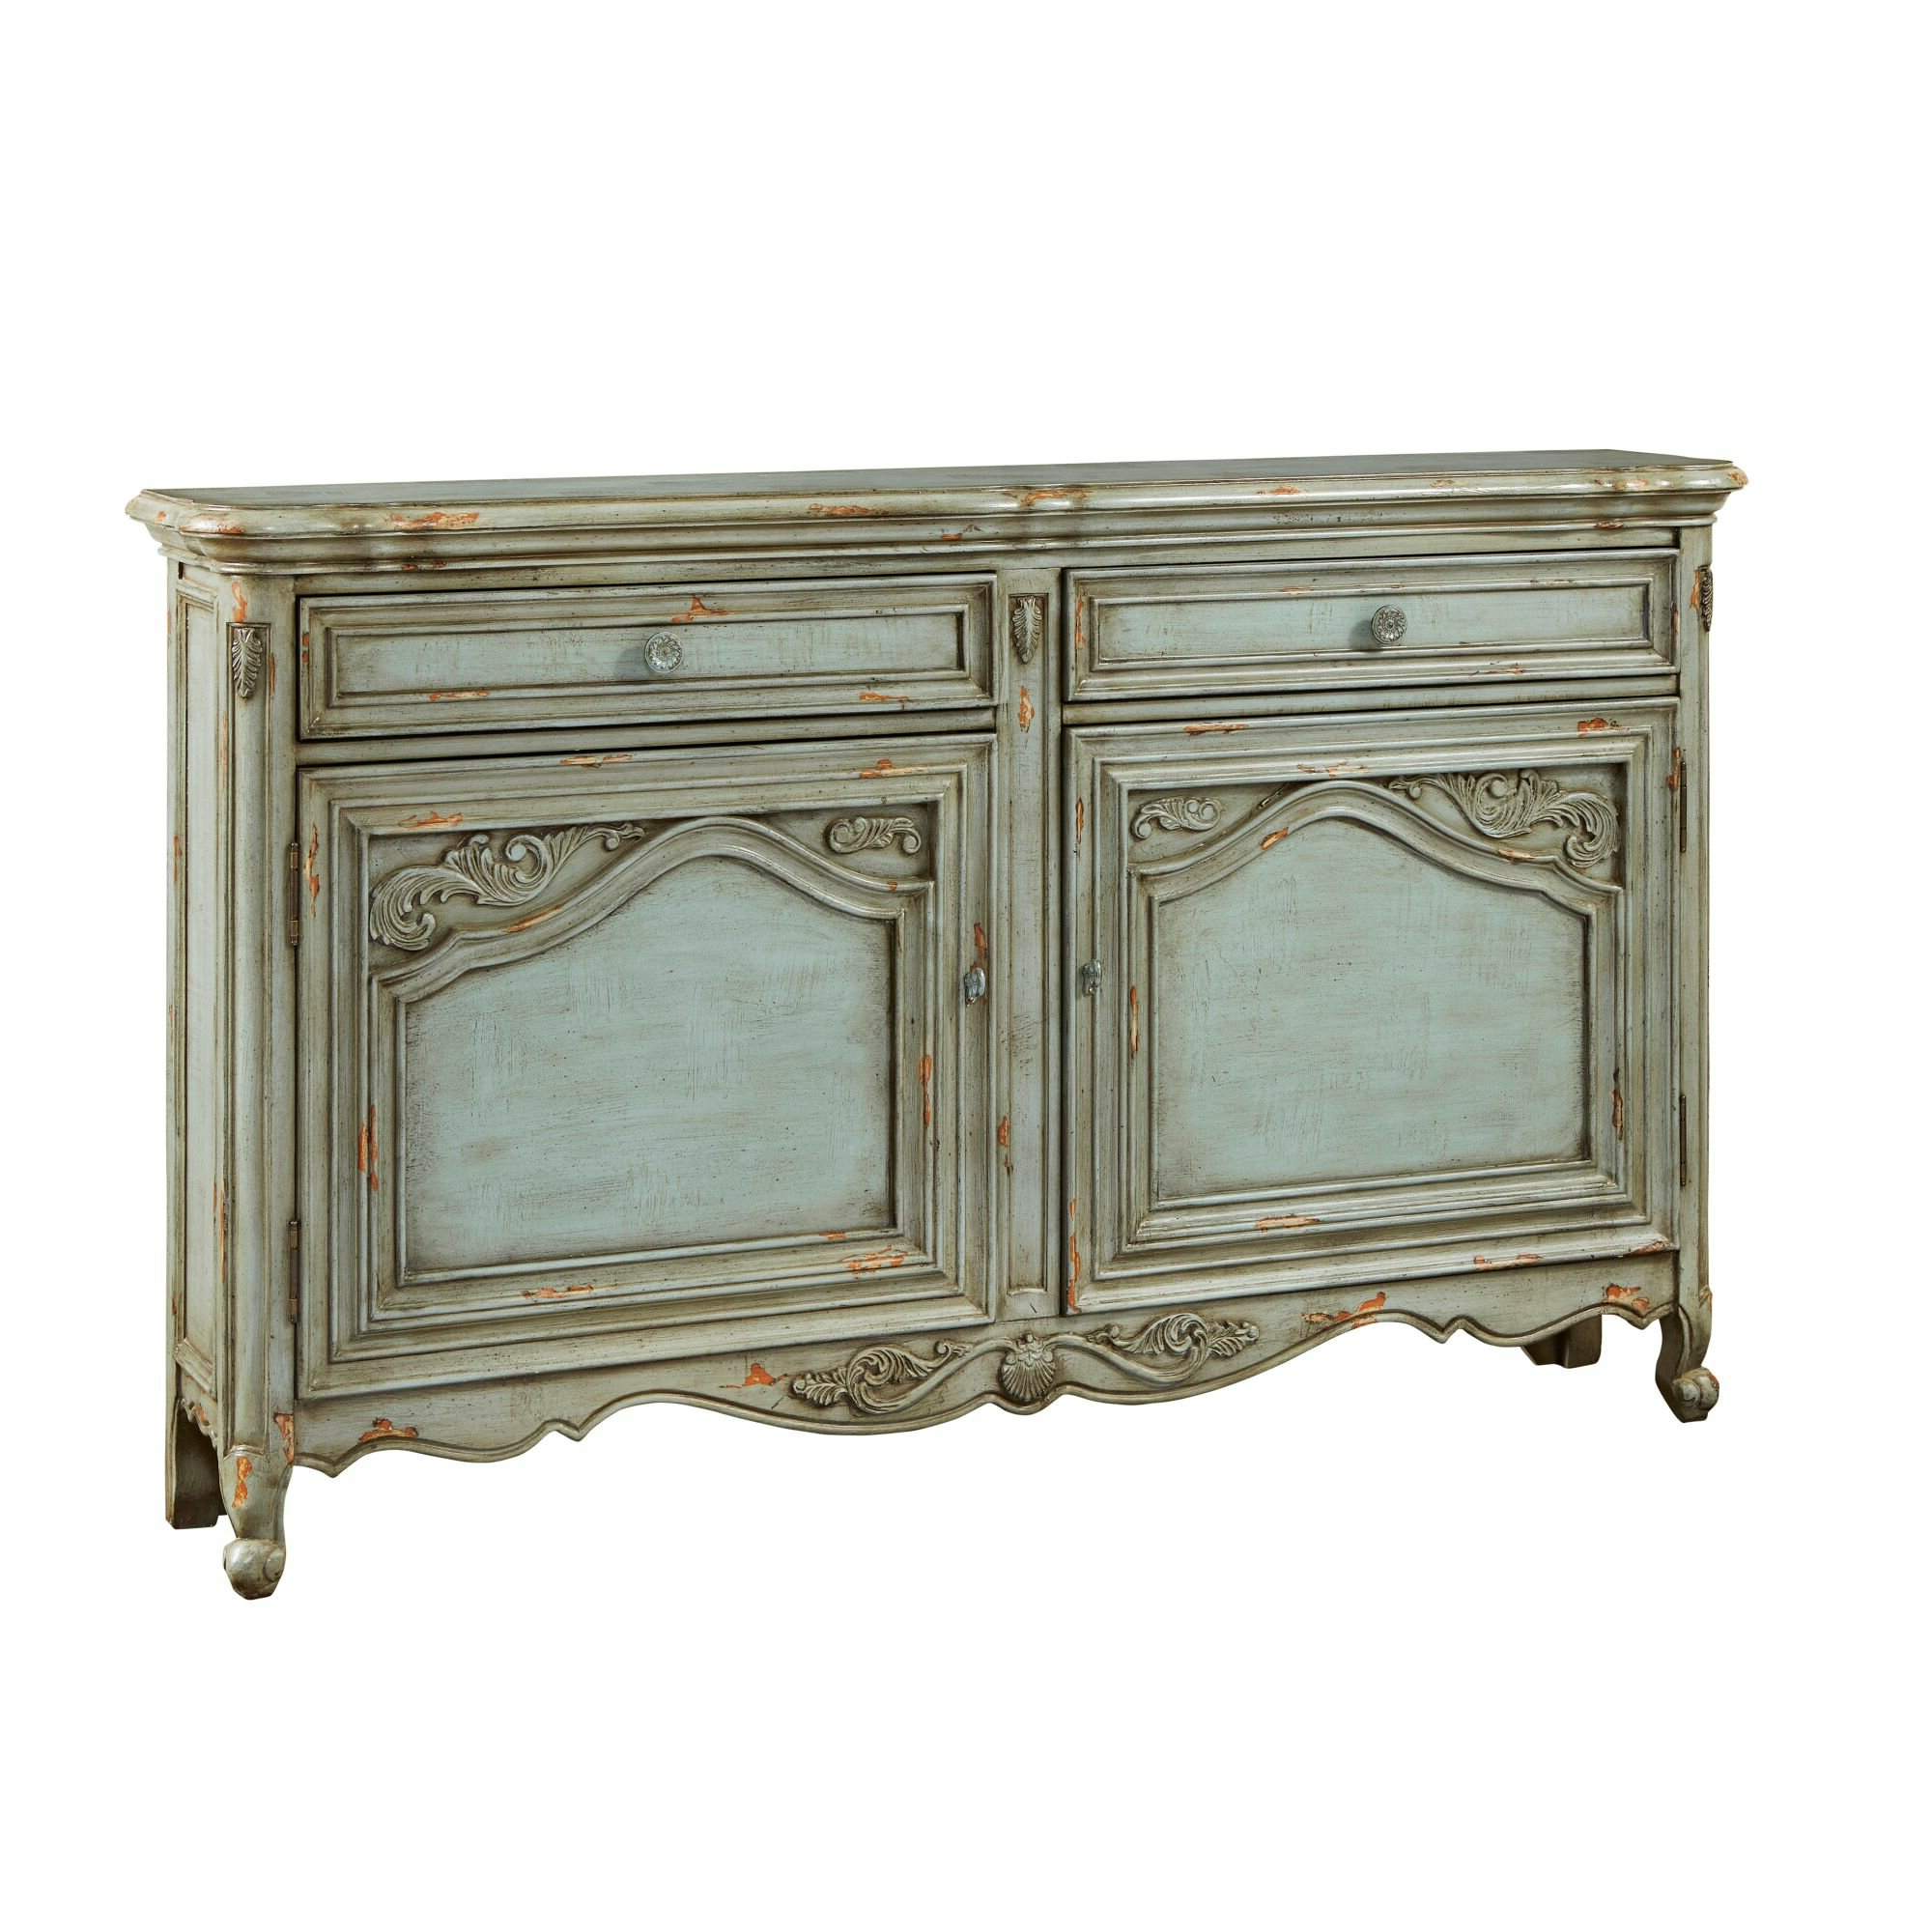 Farmhouse & Rustic Distressed Finish Sideboards & Buffets Intended For Best And Newest Seiling Sideboards (View 4 of 20)